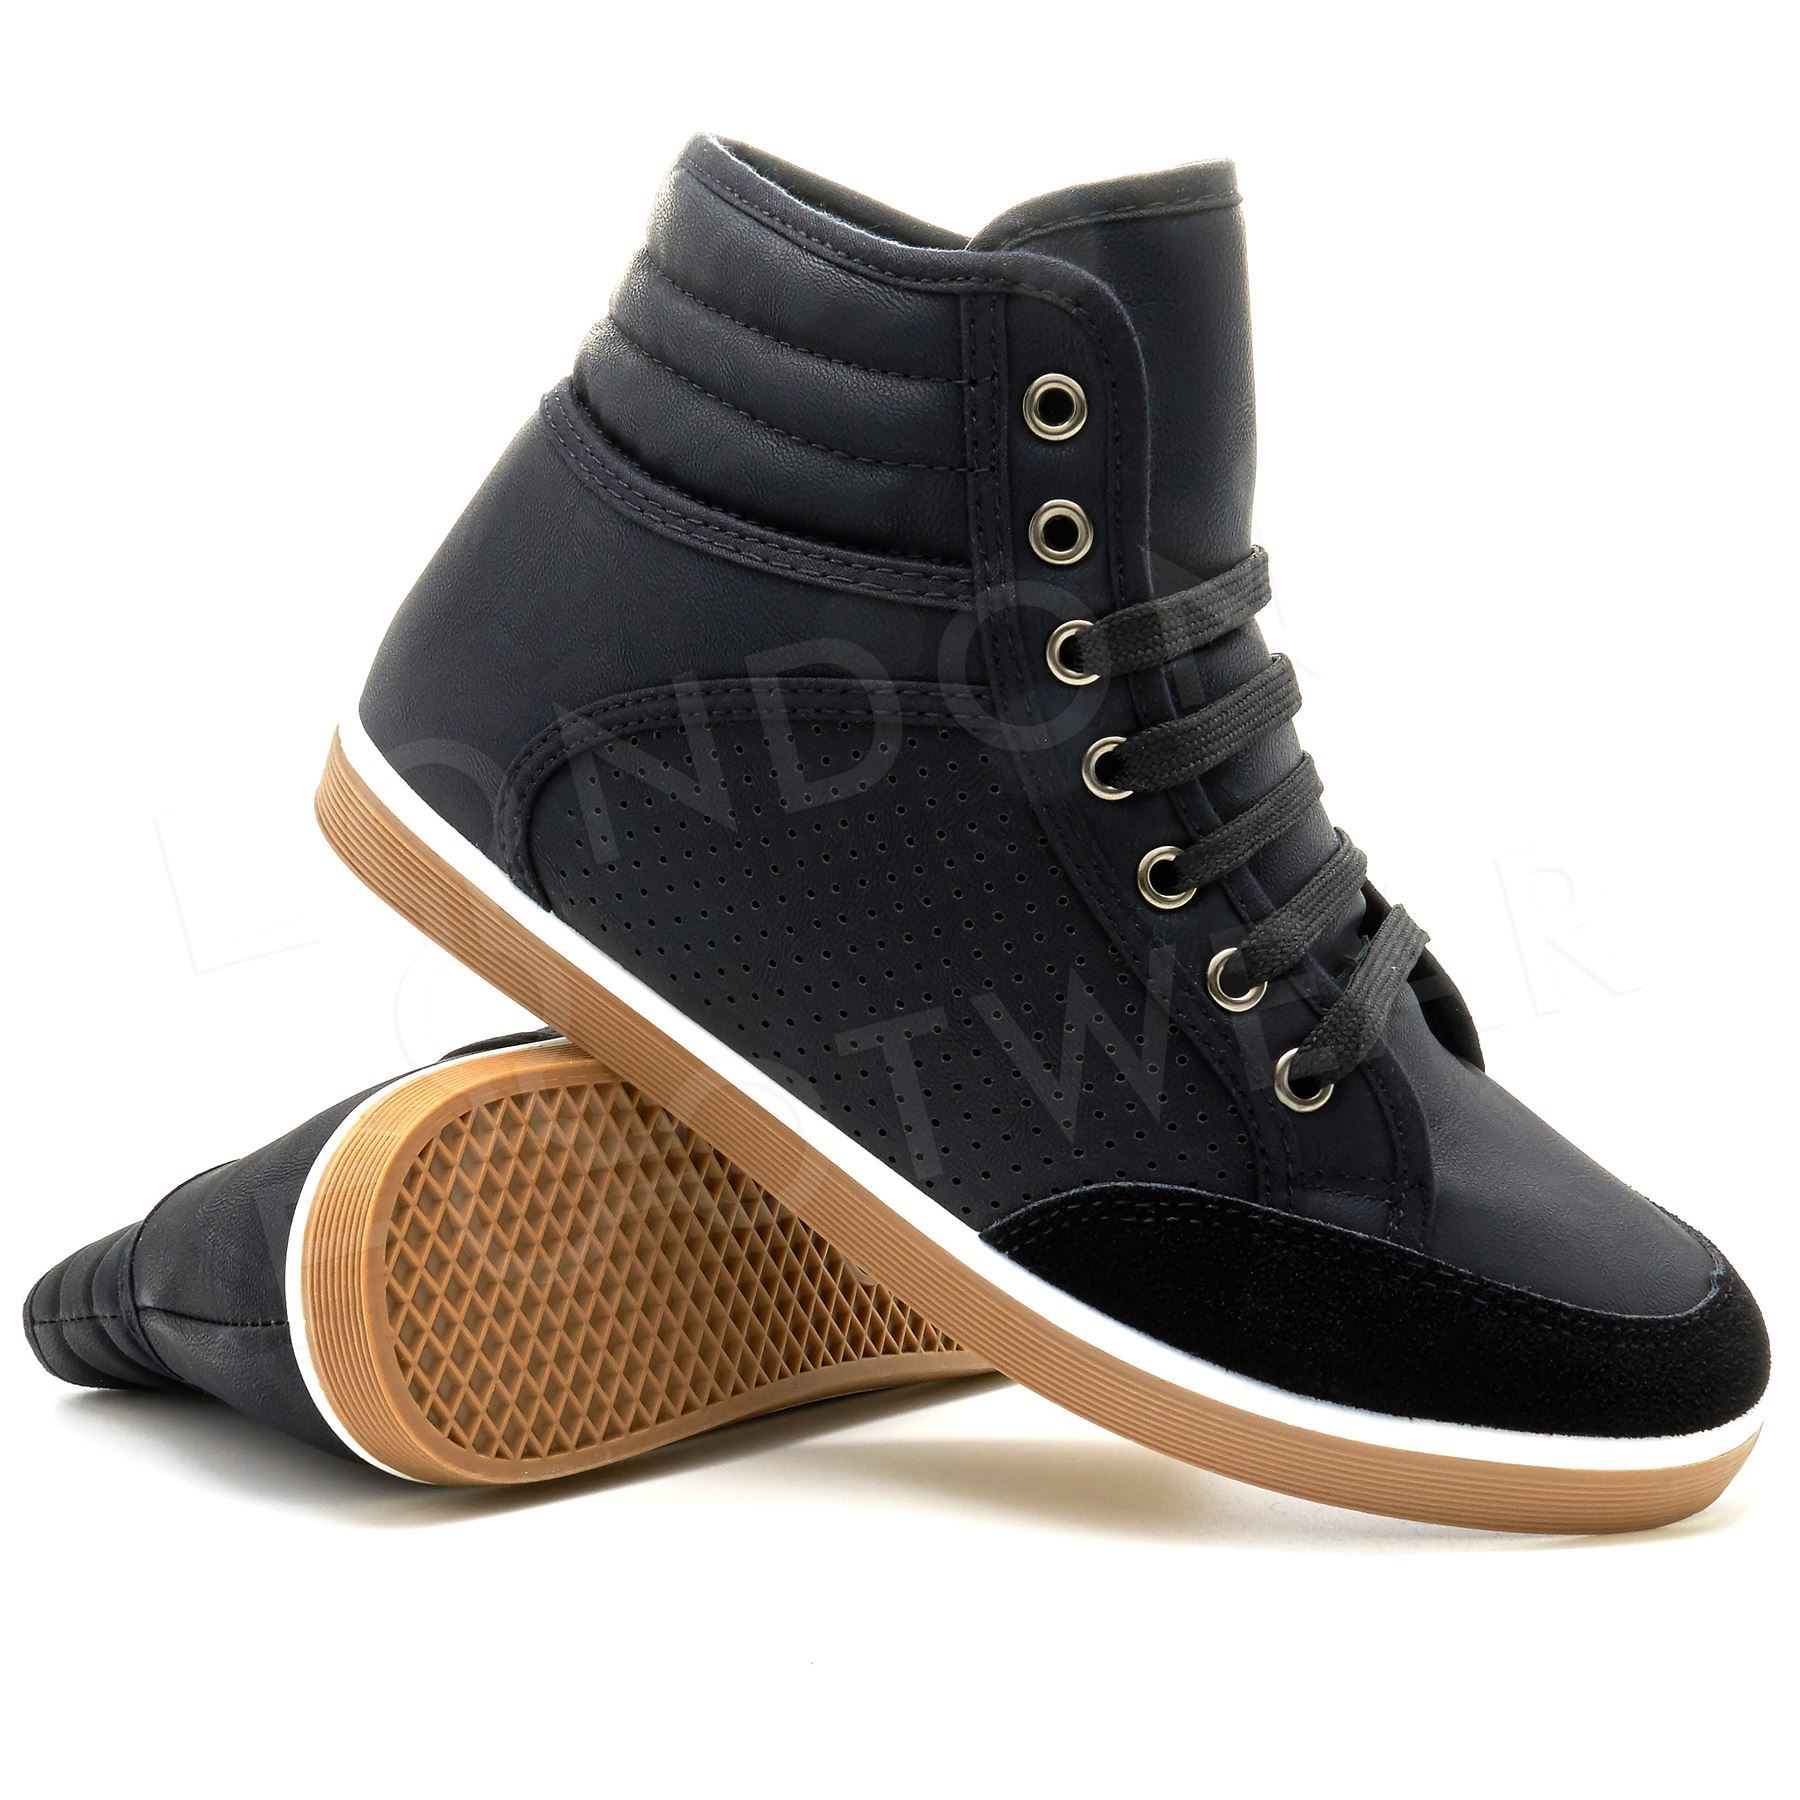 Men New In Shop By Men's Designer Hi Top Sneakers 46 items. Off-White. White Industrial Hi Top Leather Trainers. $ Off-White. Black Industrial Hi Top Leather Trainers. $ Off-White. Light Grey Moto Wrap Trainers. $ Salomon S/Lab. x The Broken Arm black Shelter sneakers.